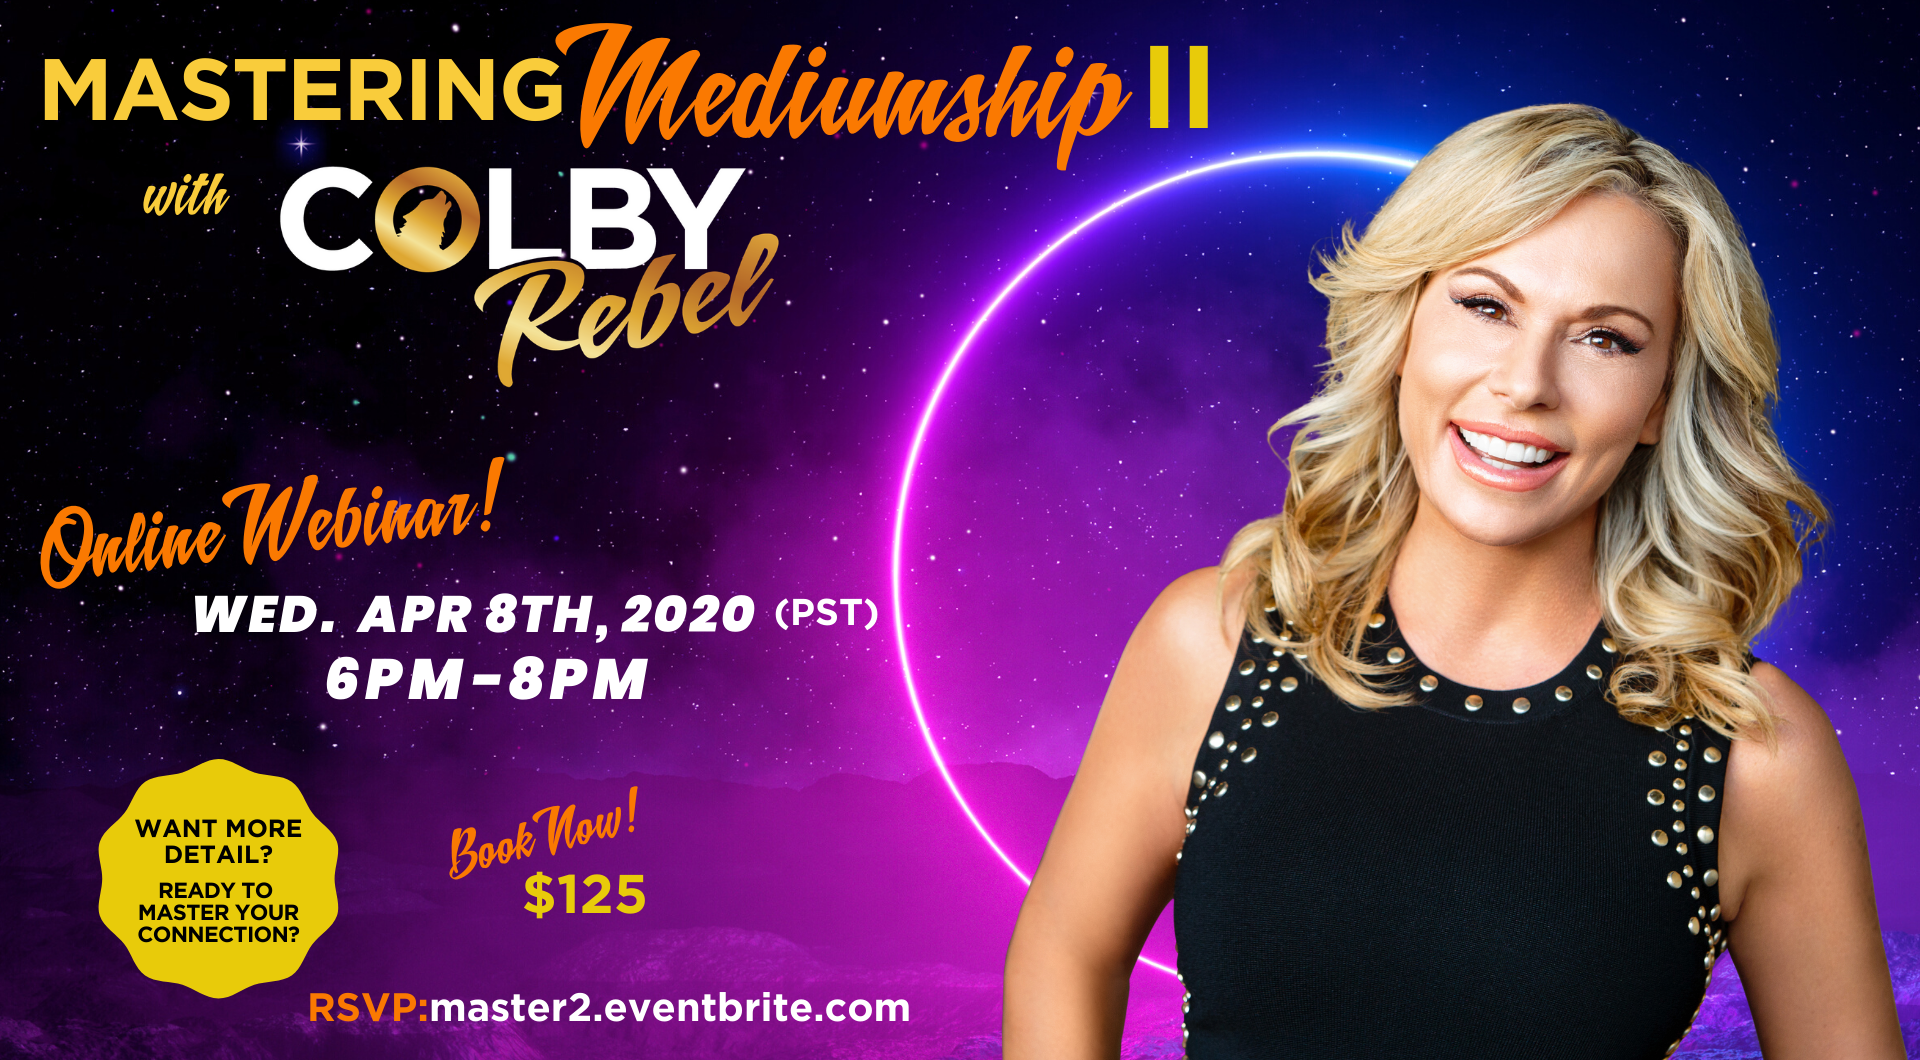 Online Mediumship Class with Colby Rebel